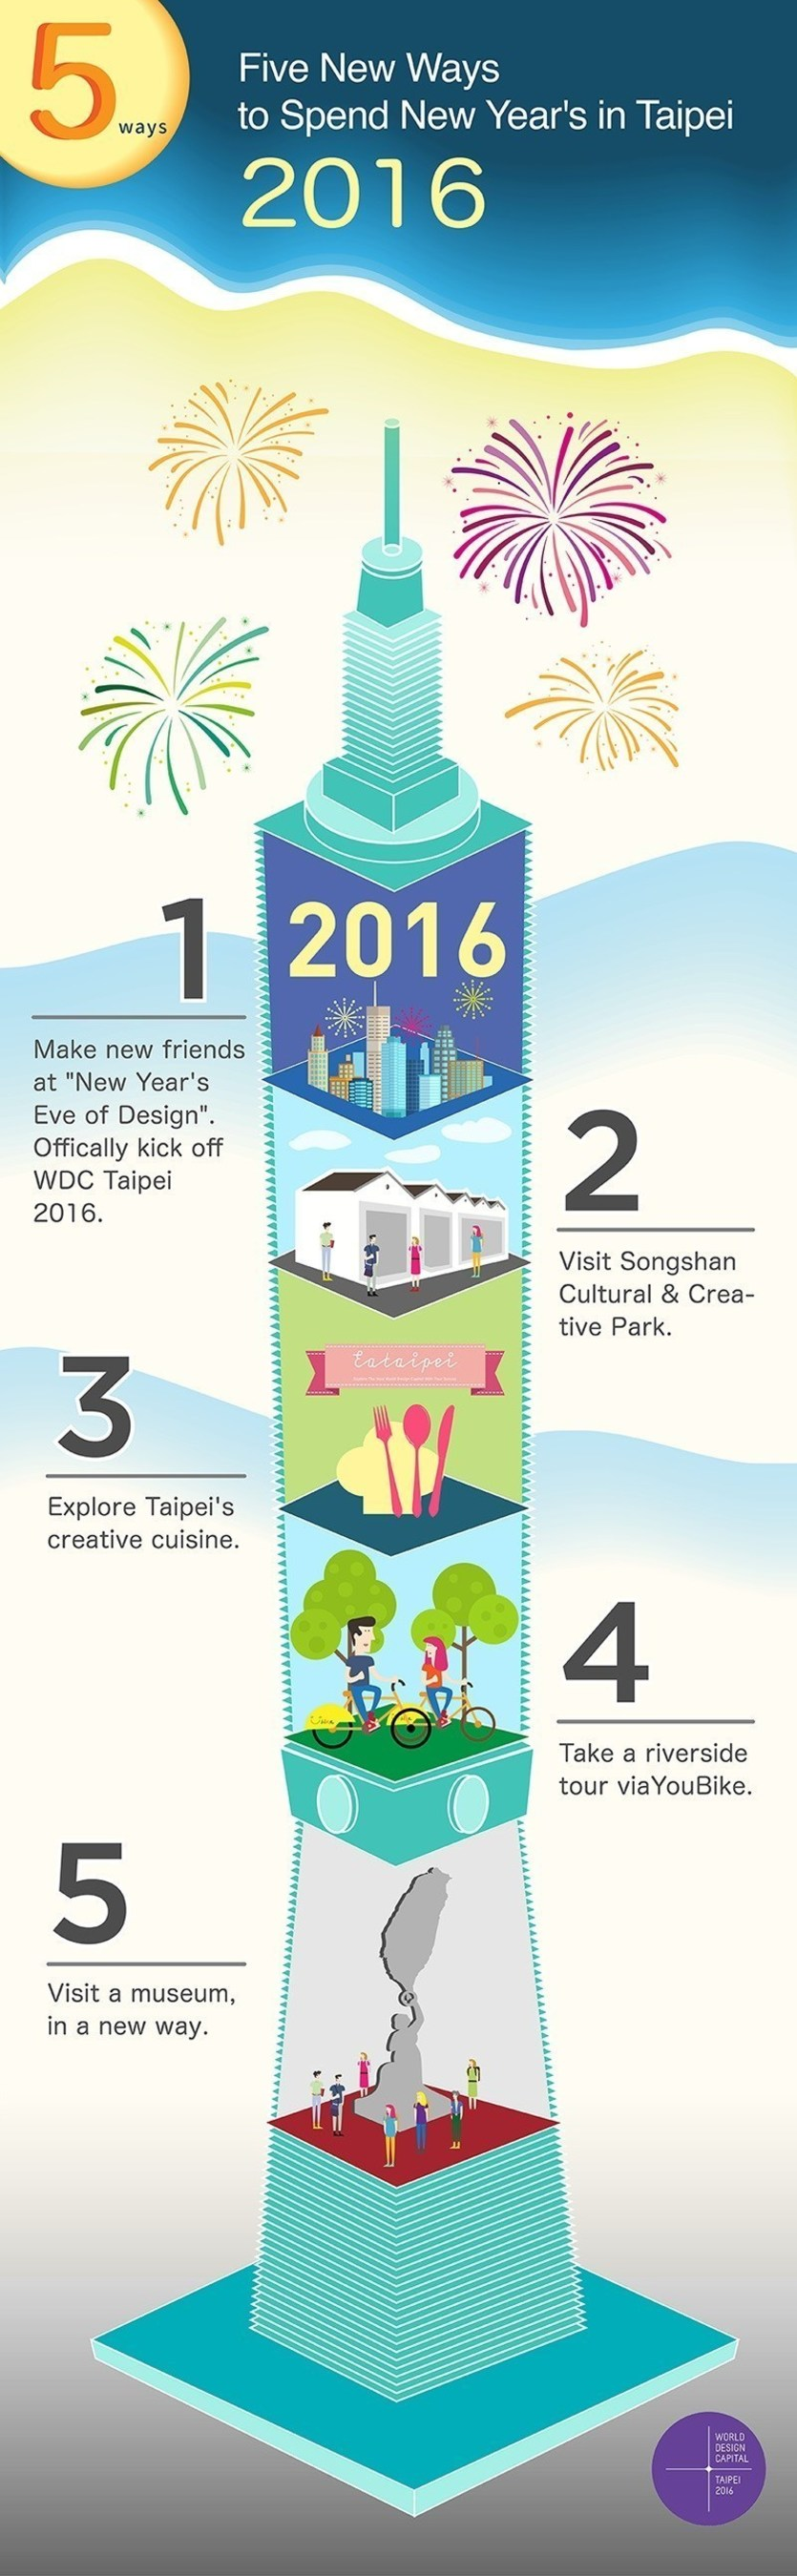 (WDC Taipei 2016) Five New Ways to Spend New Year's in Taipei